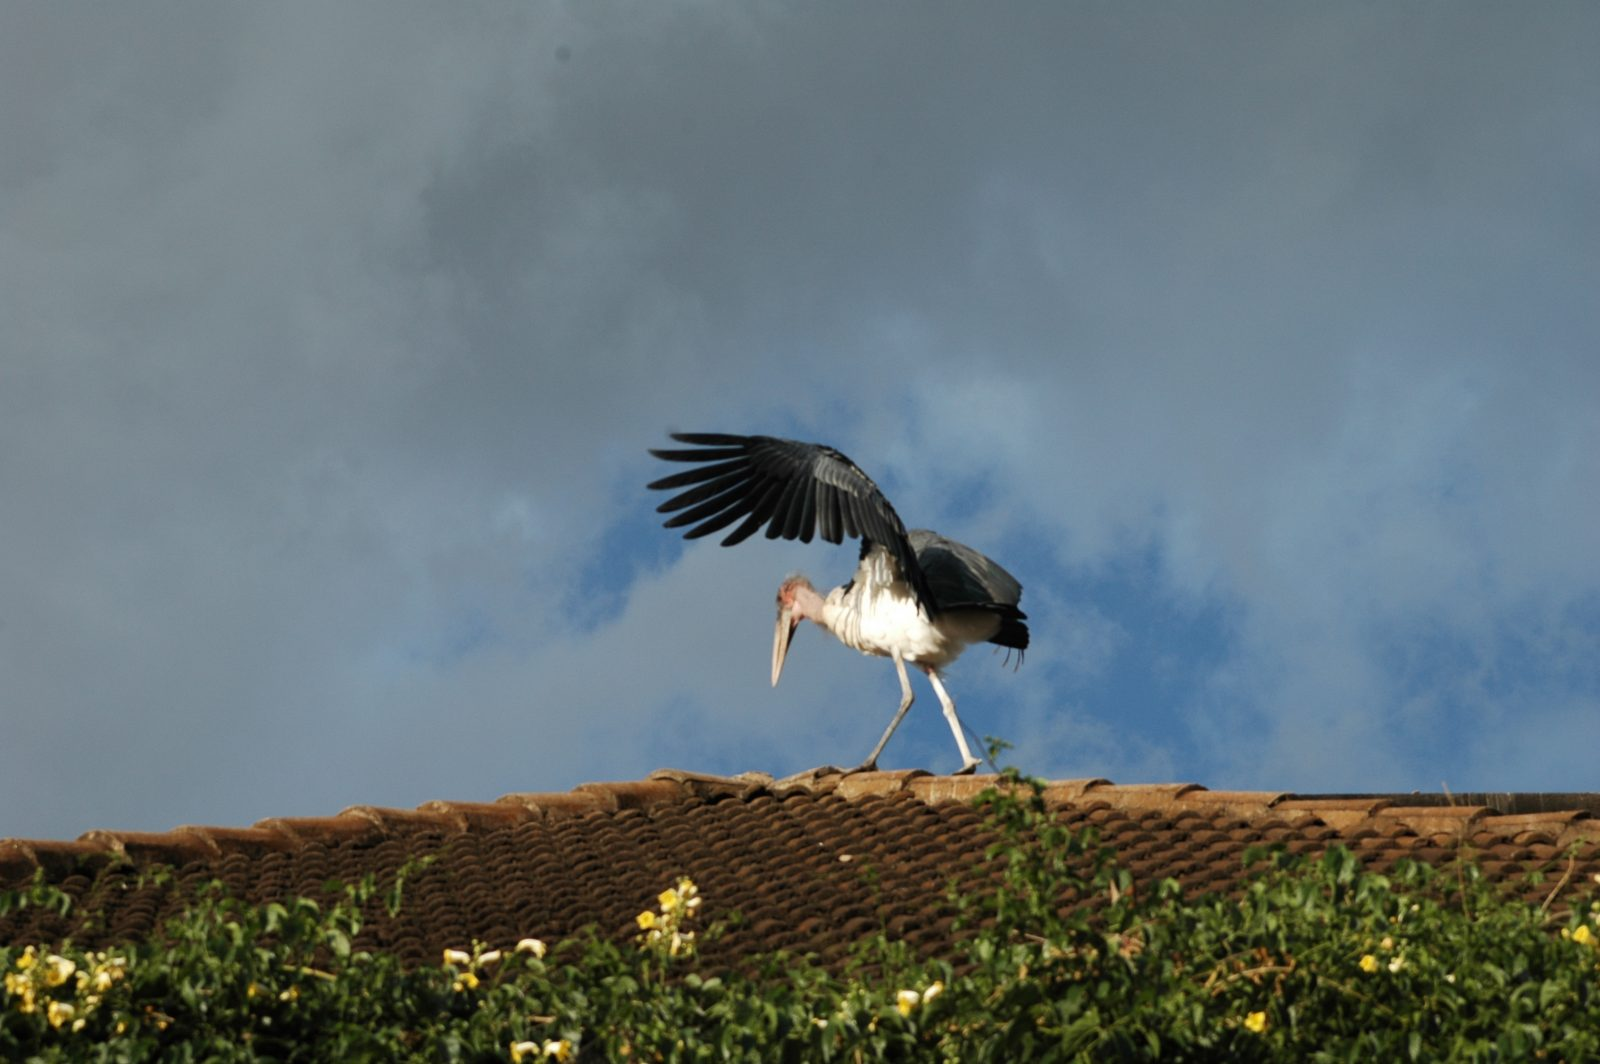 stork on rooftop